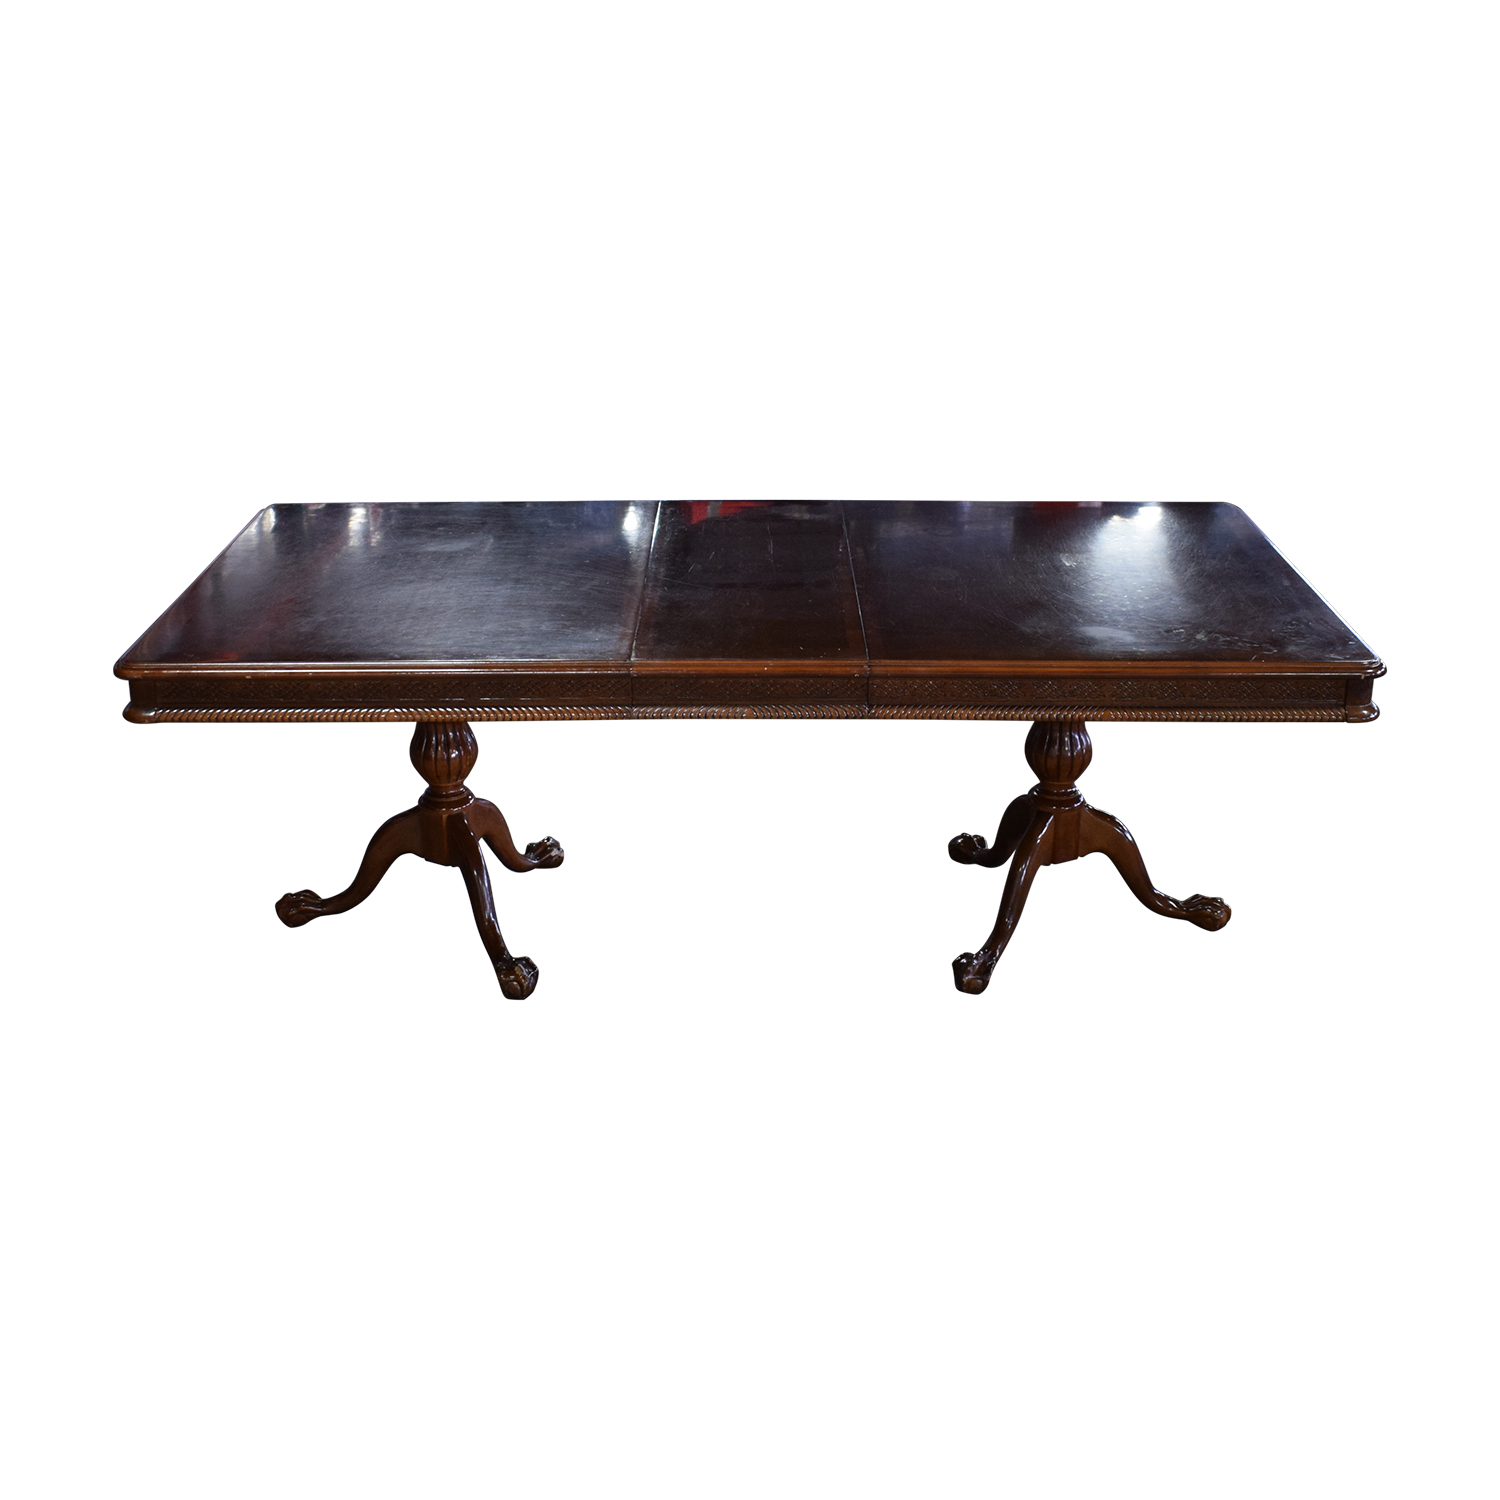 Carved Wood Dining Table with Two Extensions dimensions